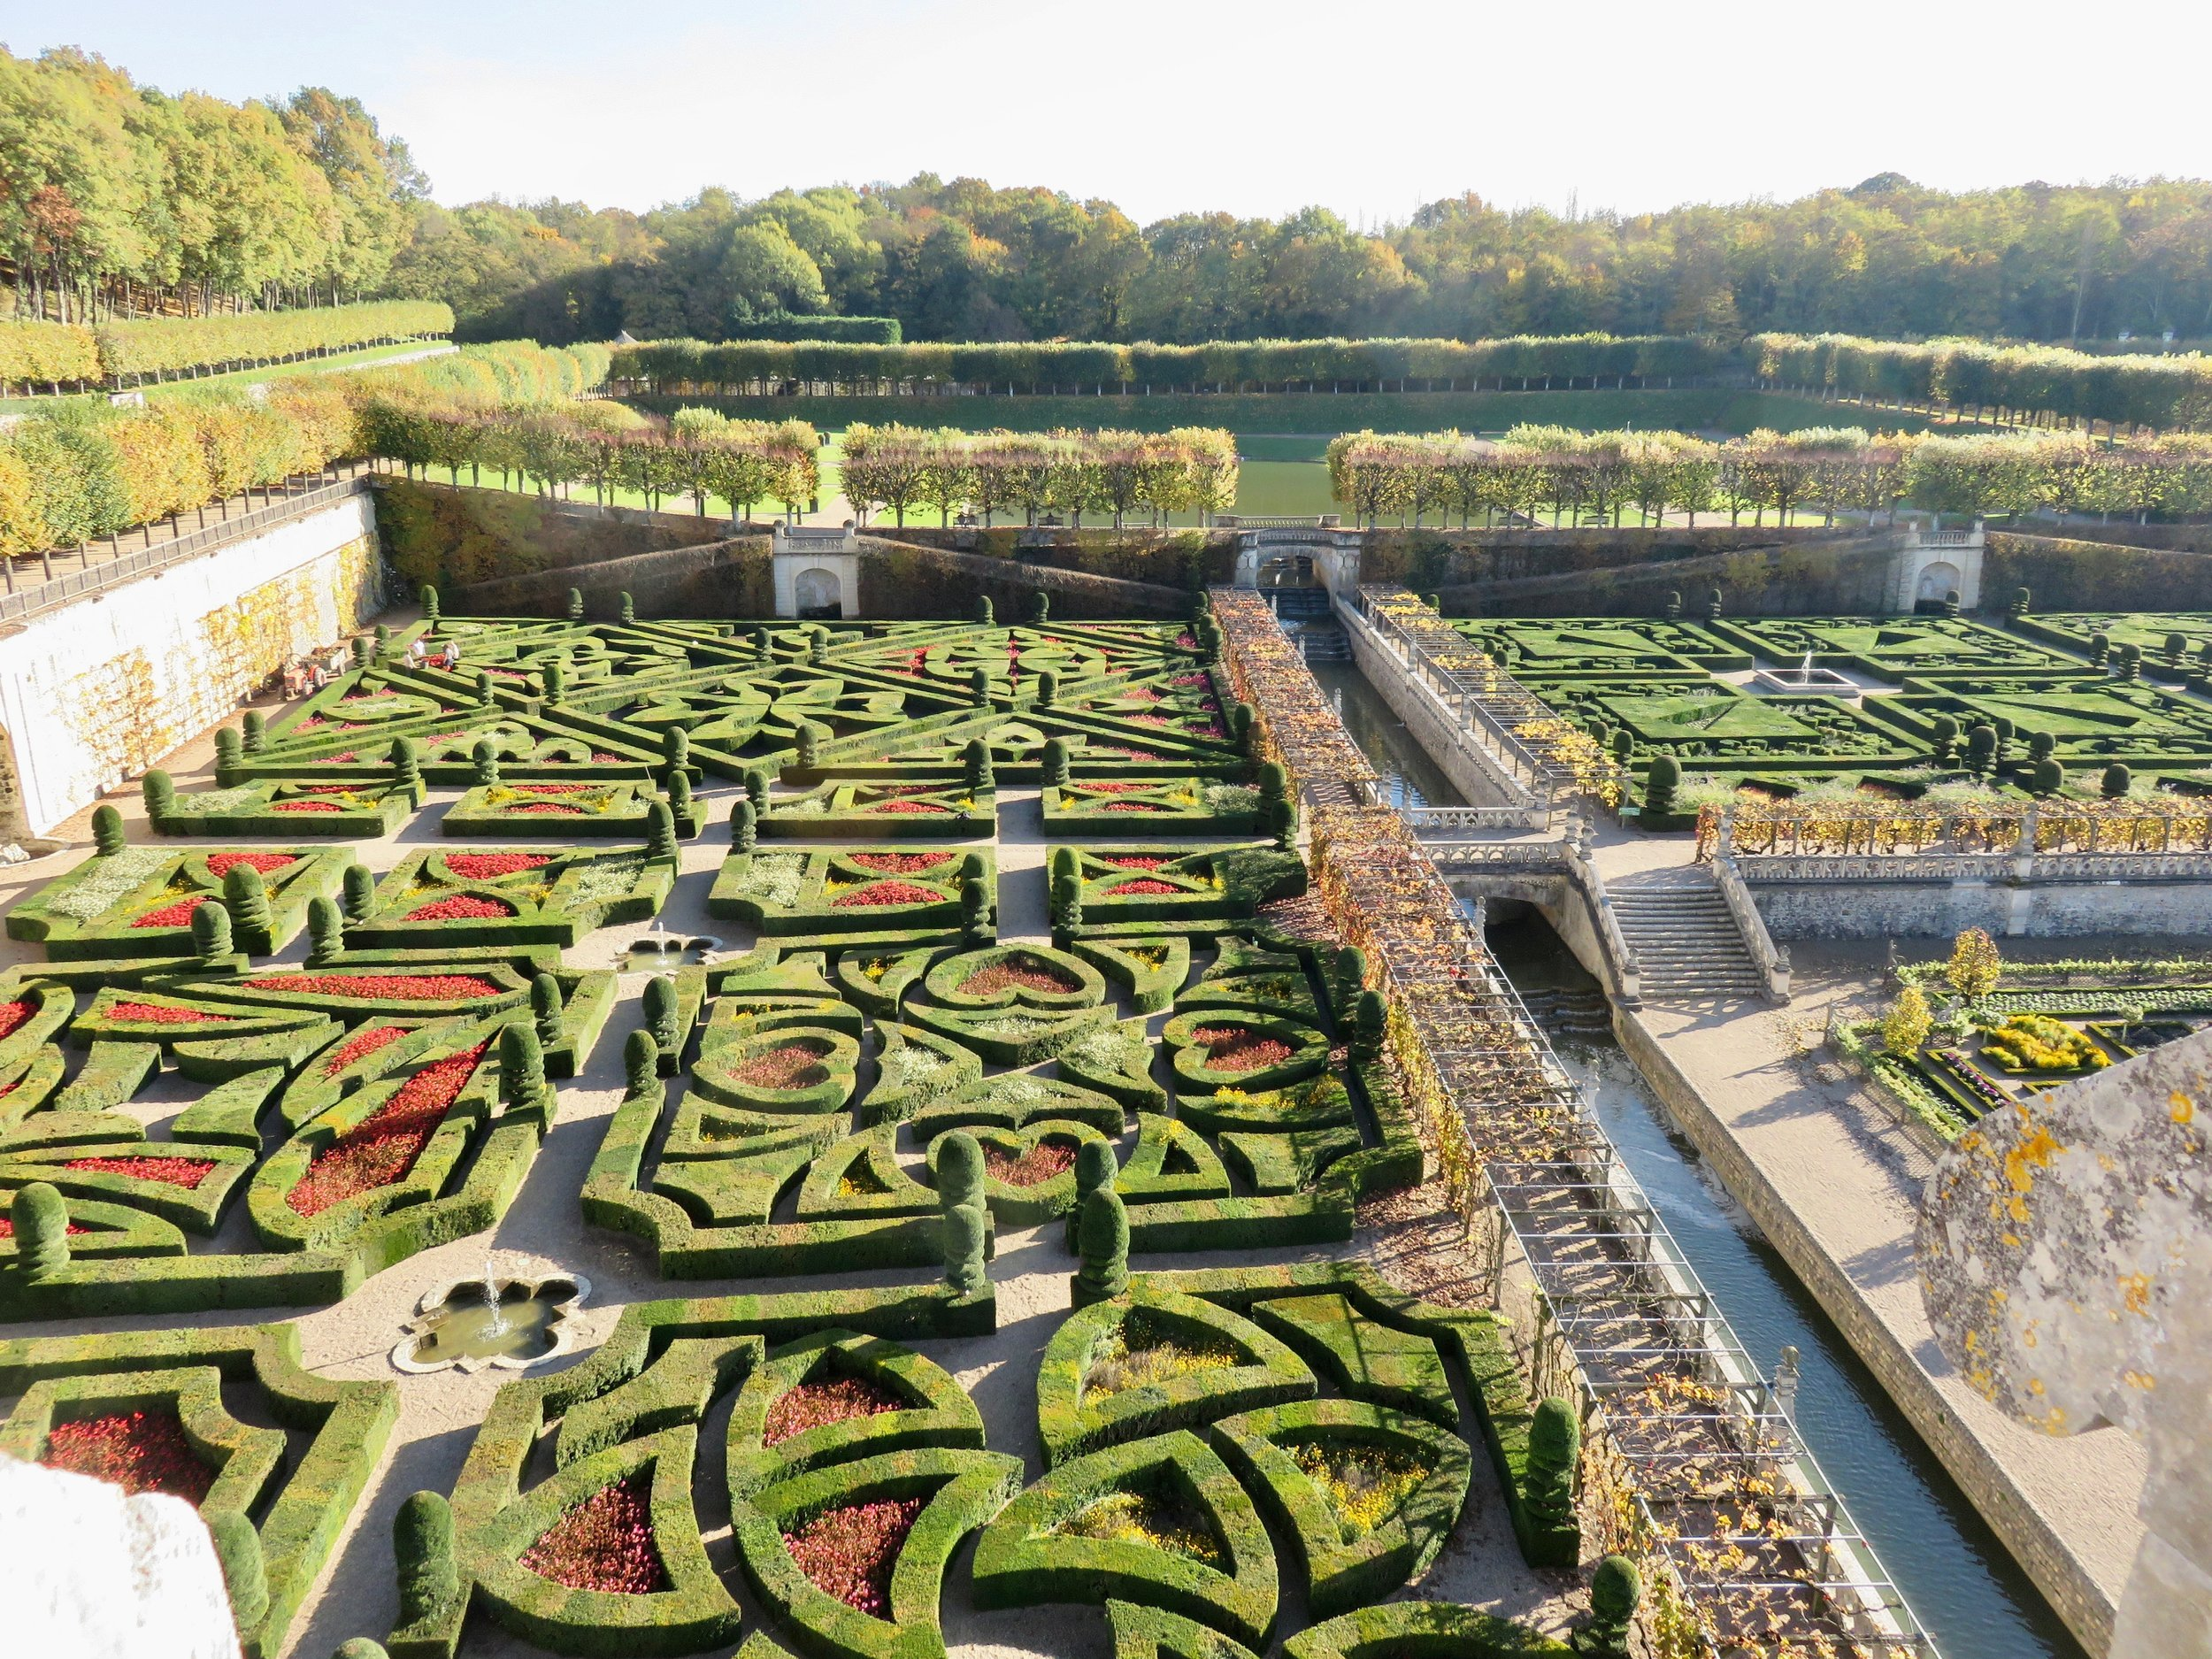 These wild gardens at Château De Villandry go on and on. They also include several vegatable gardens.